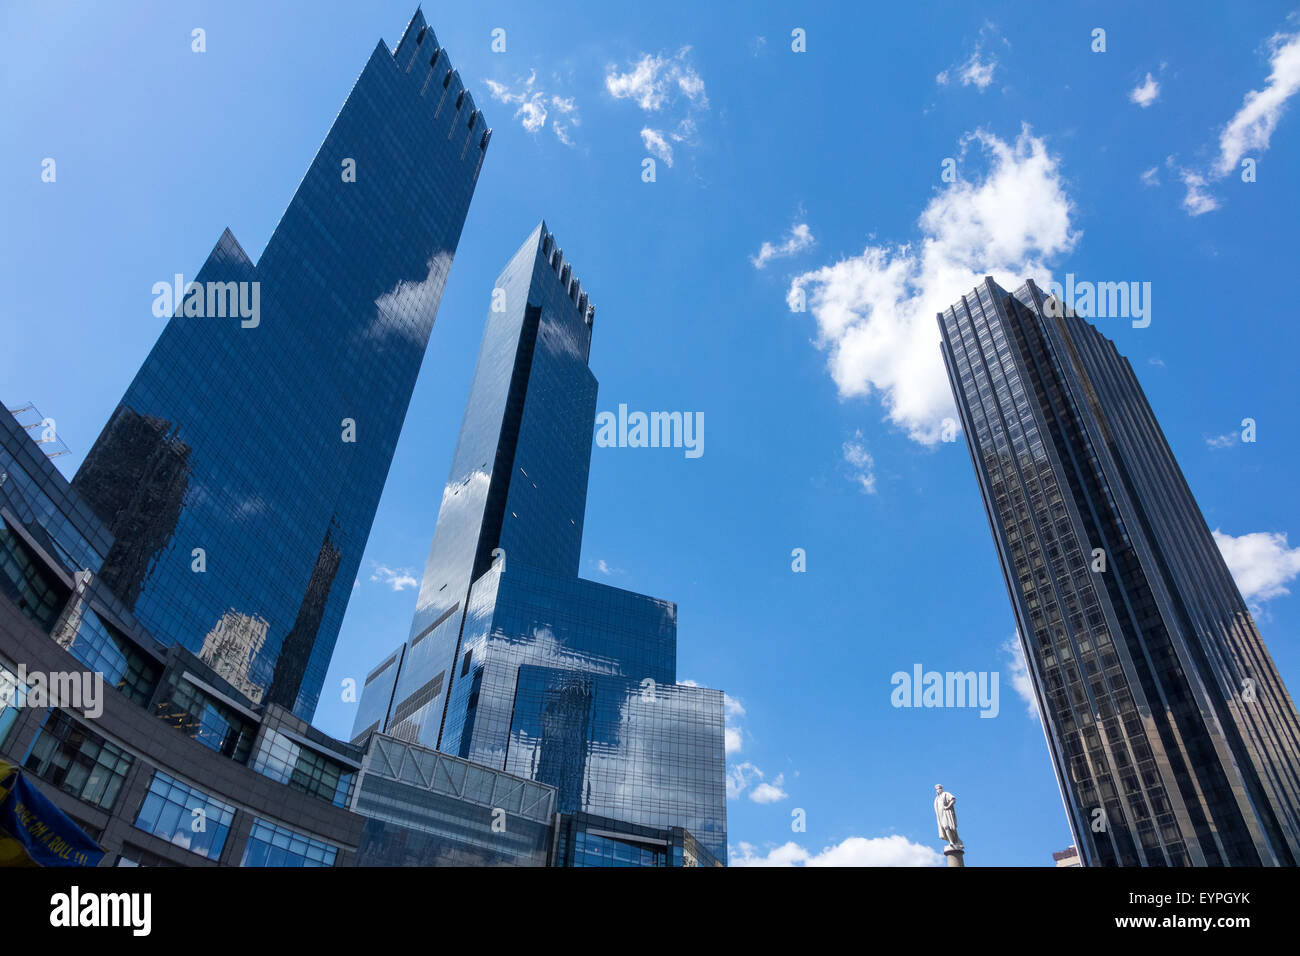 Time Warner Center at Columbus Circle in New York City, showing statue of Columbus Stock Photo